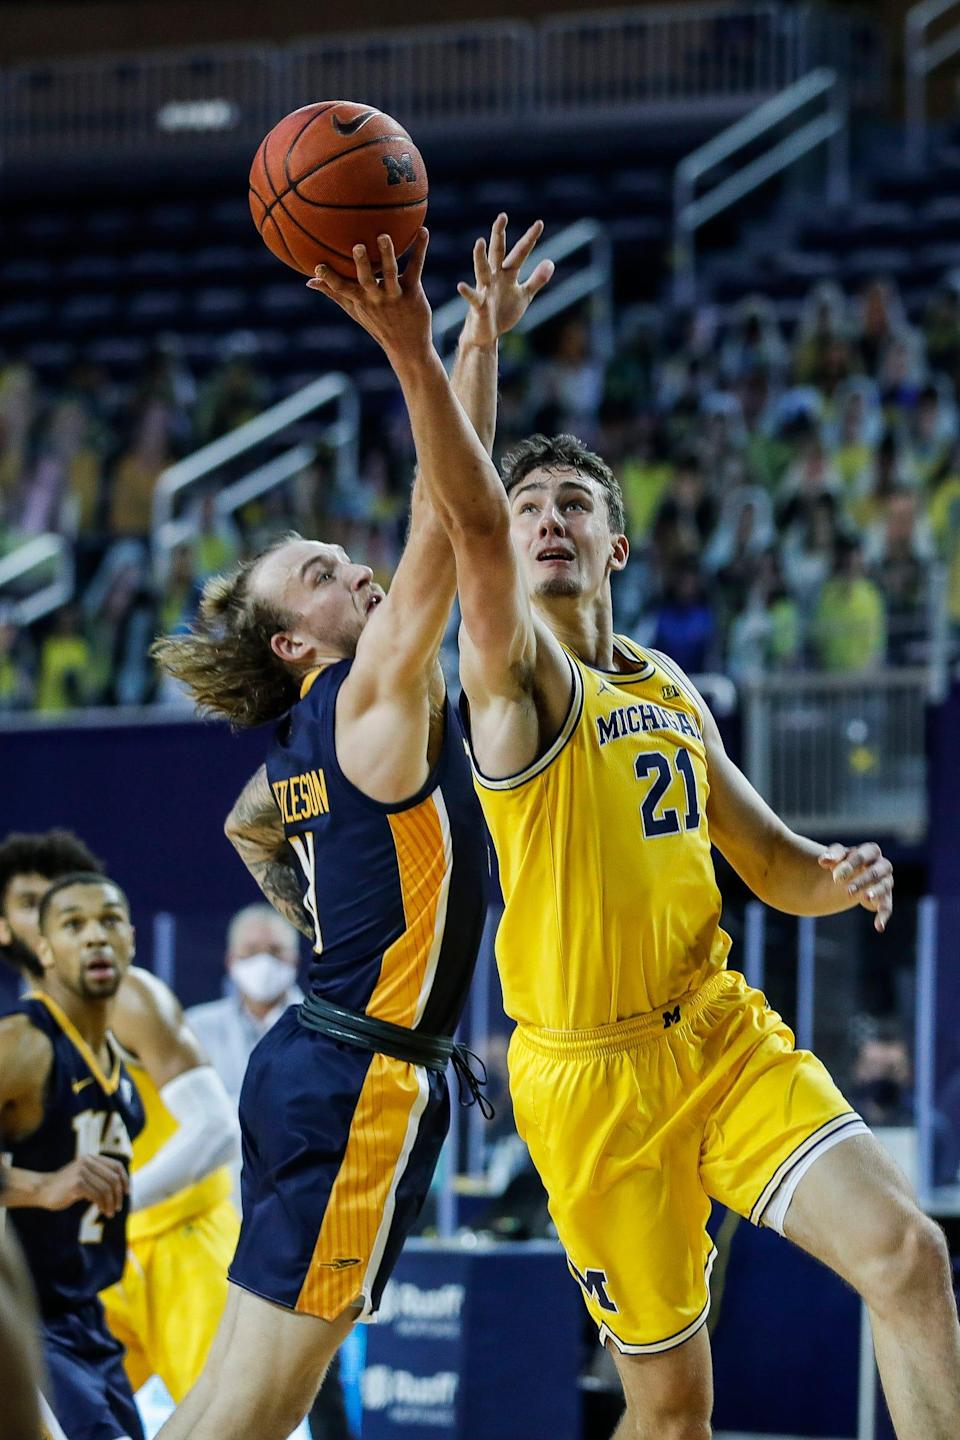 Michigan guard Franz Wagner makes a layup against Toledo guard Spencer Littleson during the first half at Crisler Center in Ann Arbor, Wednesday, Dec. 9, 2020.